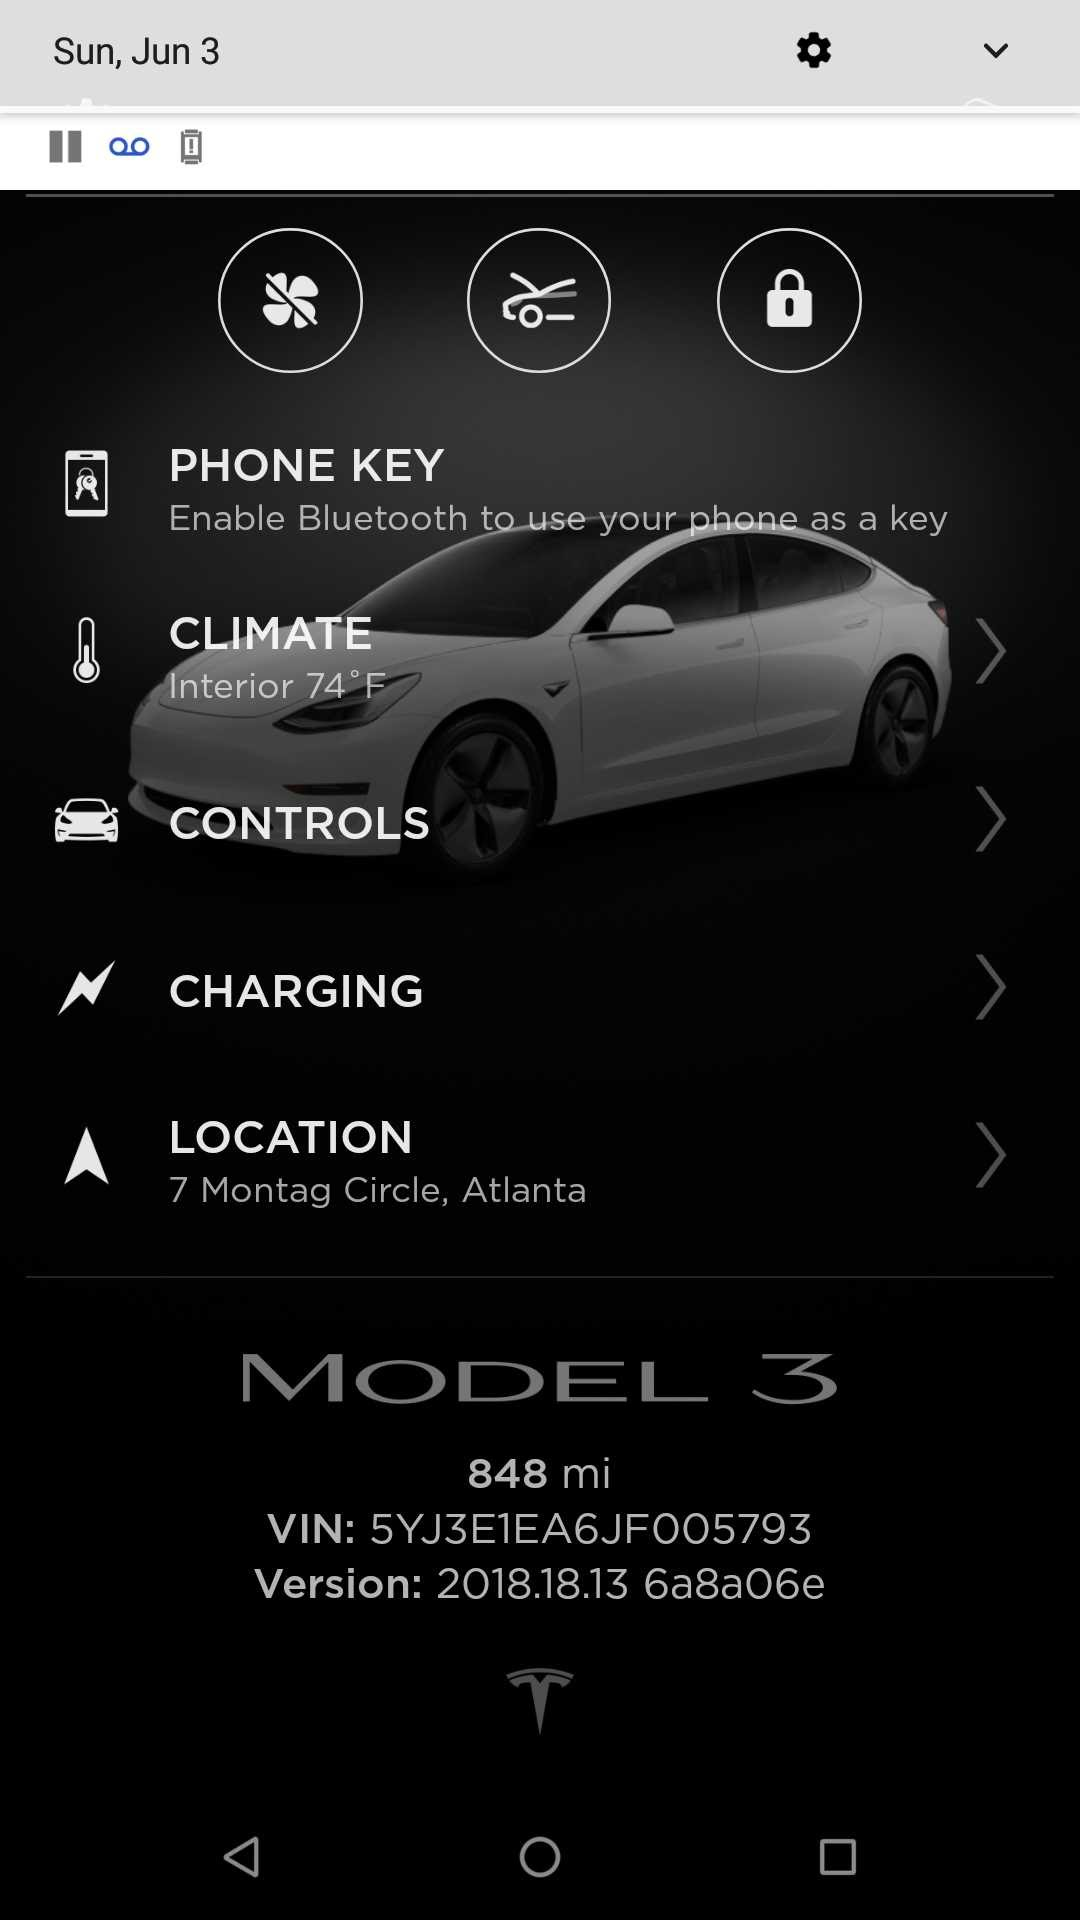 model3-screenshot.jpg